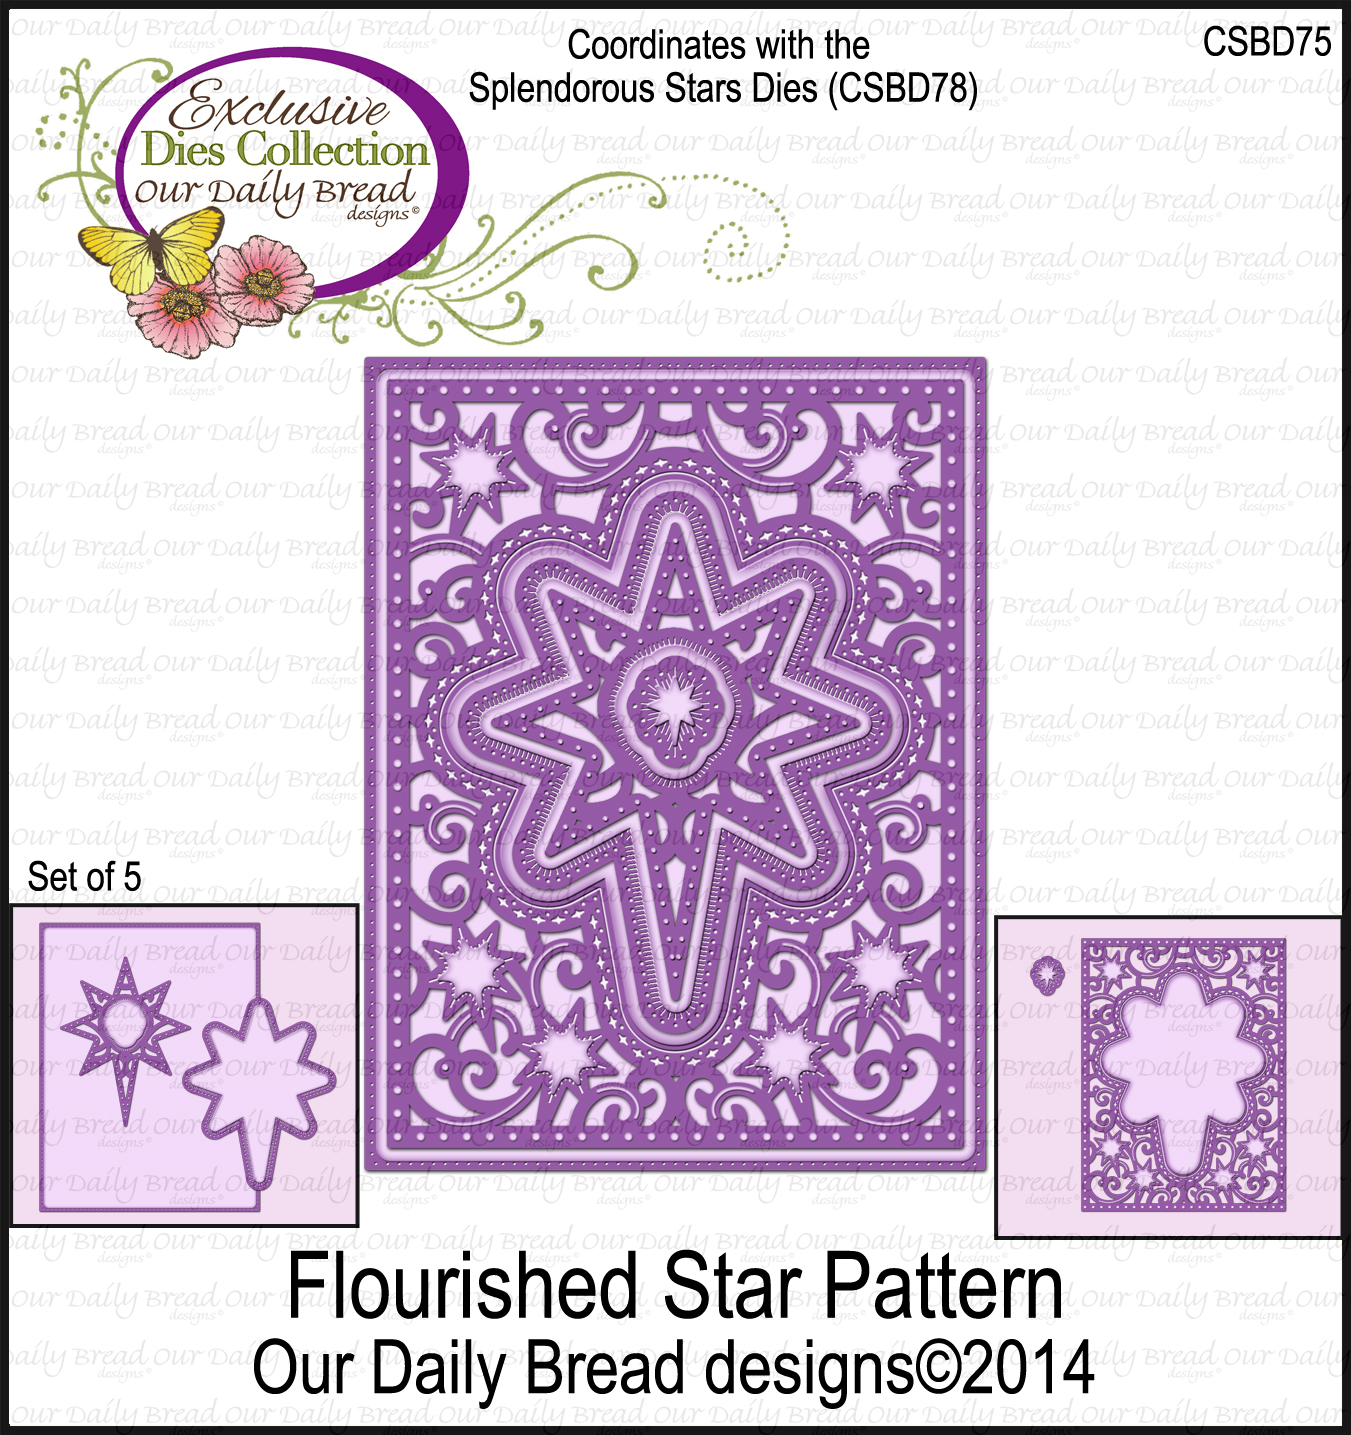 Our Daily Bread Designs Custom Flourished Star Pattern Die